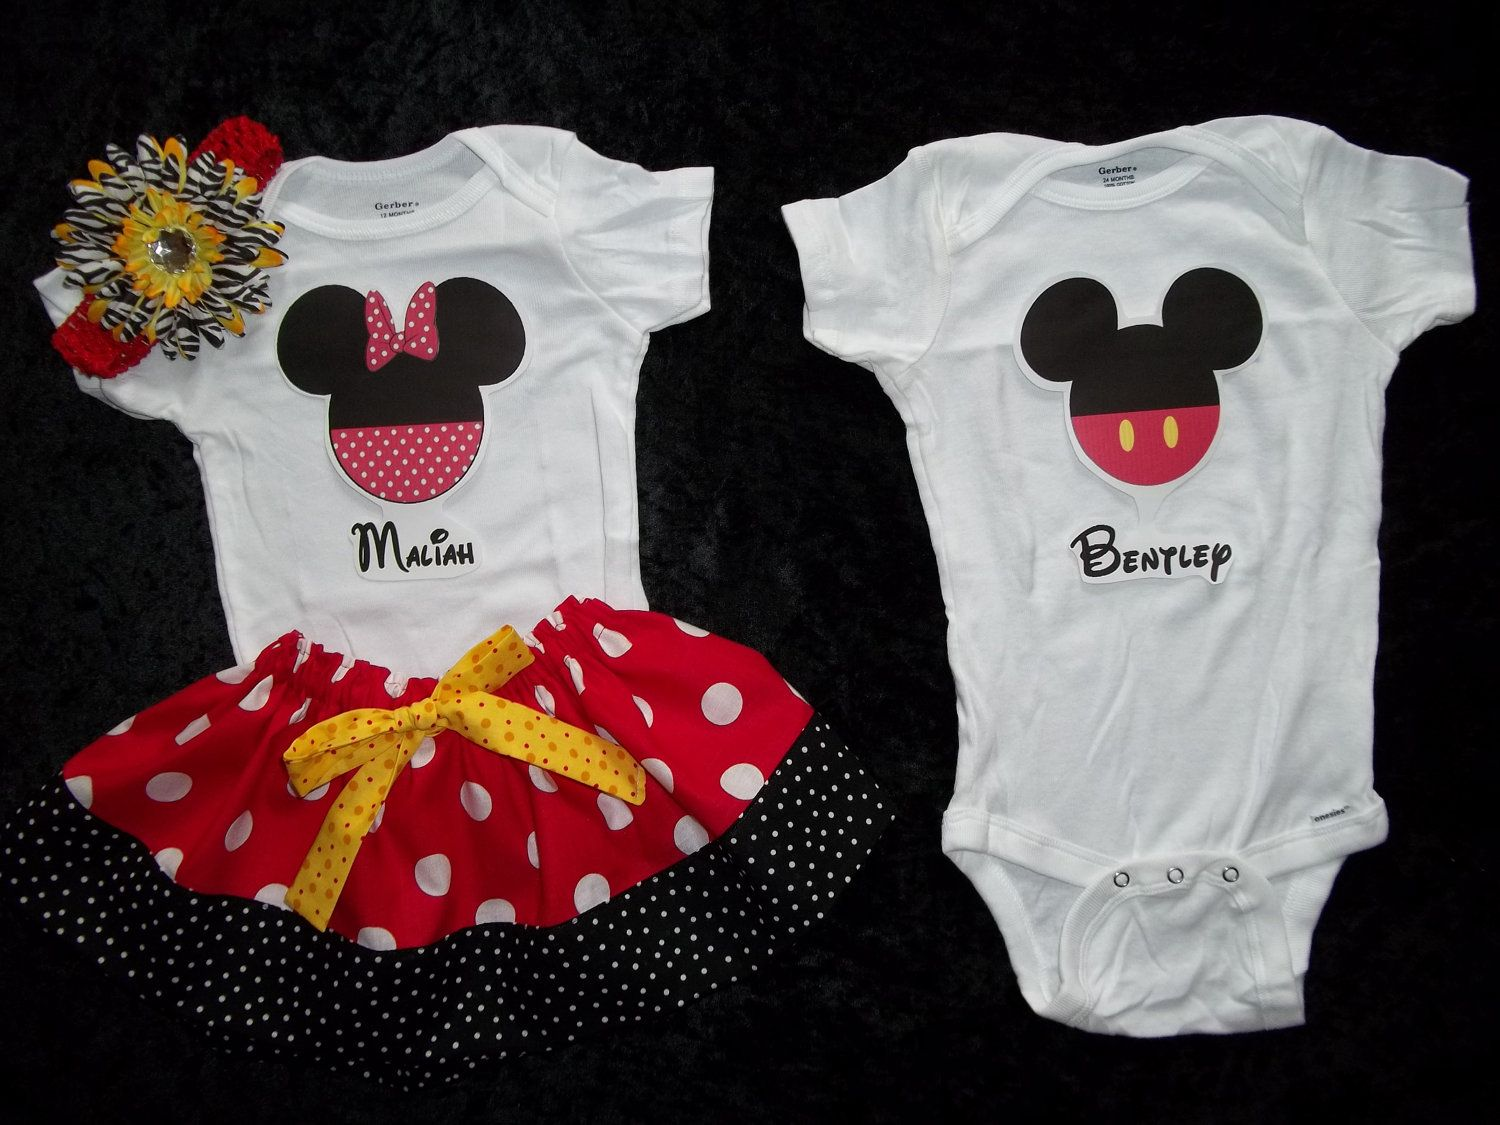 BoyGirl Twins Matching Outfits Skirt and Onesie 12m 18m MinnieMickey Mouse